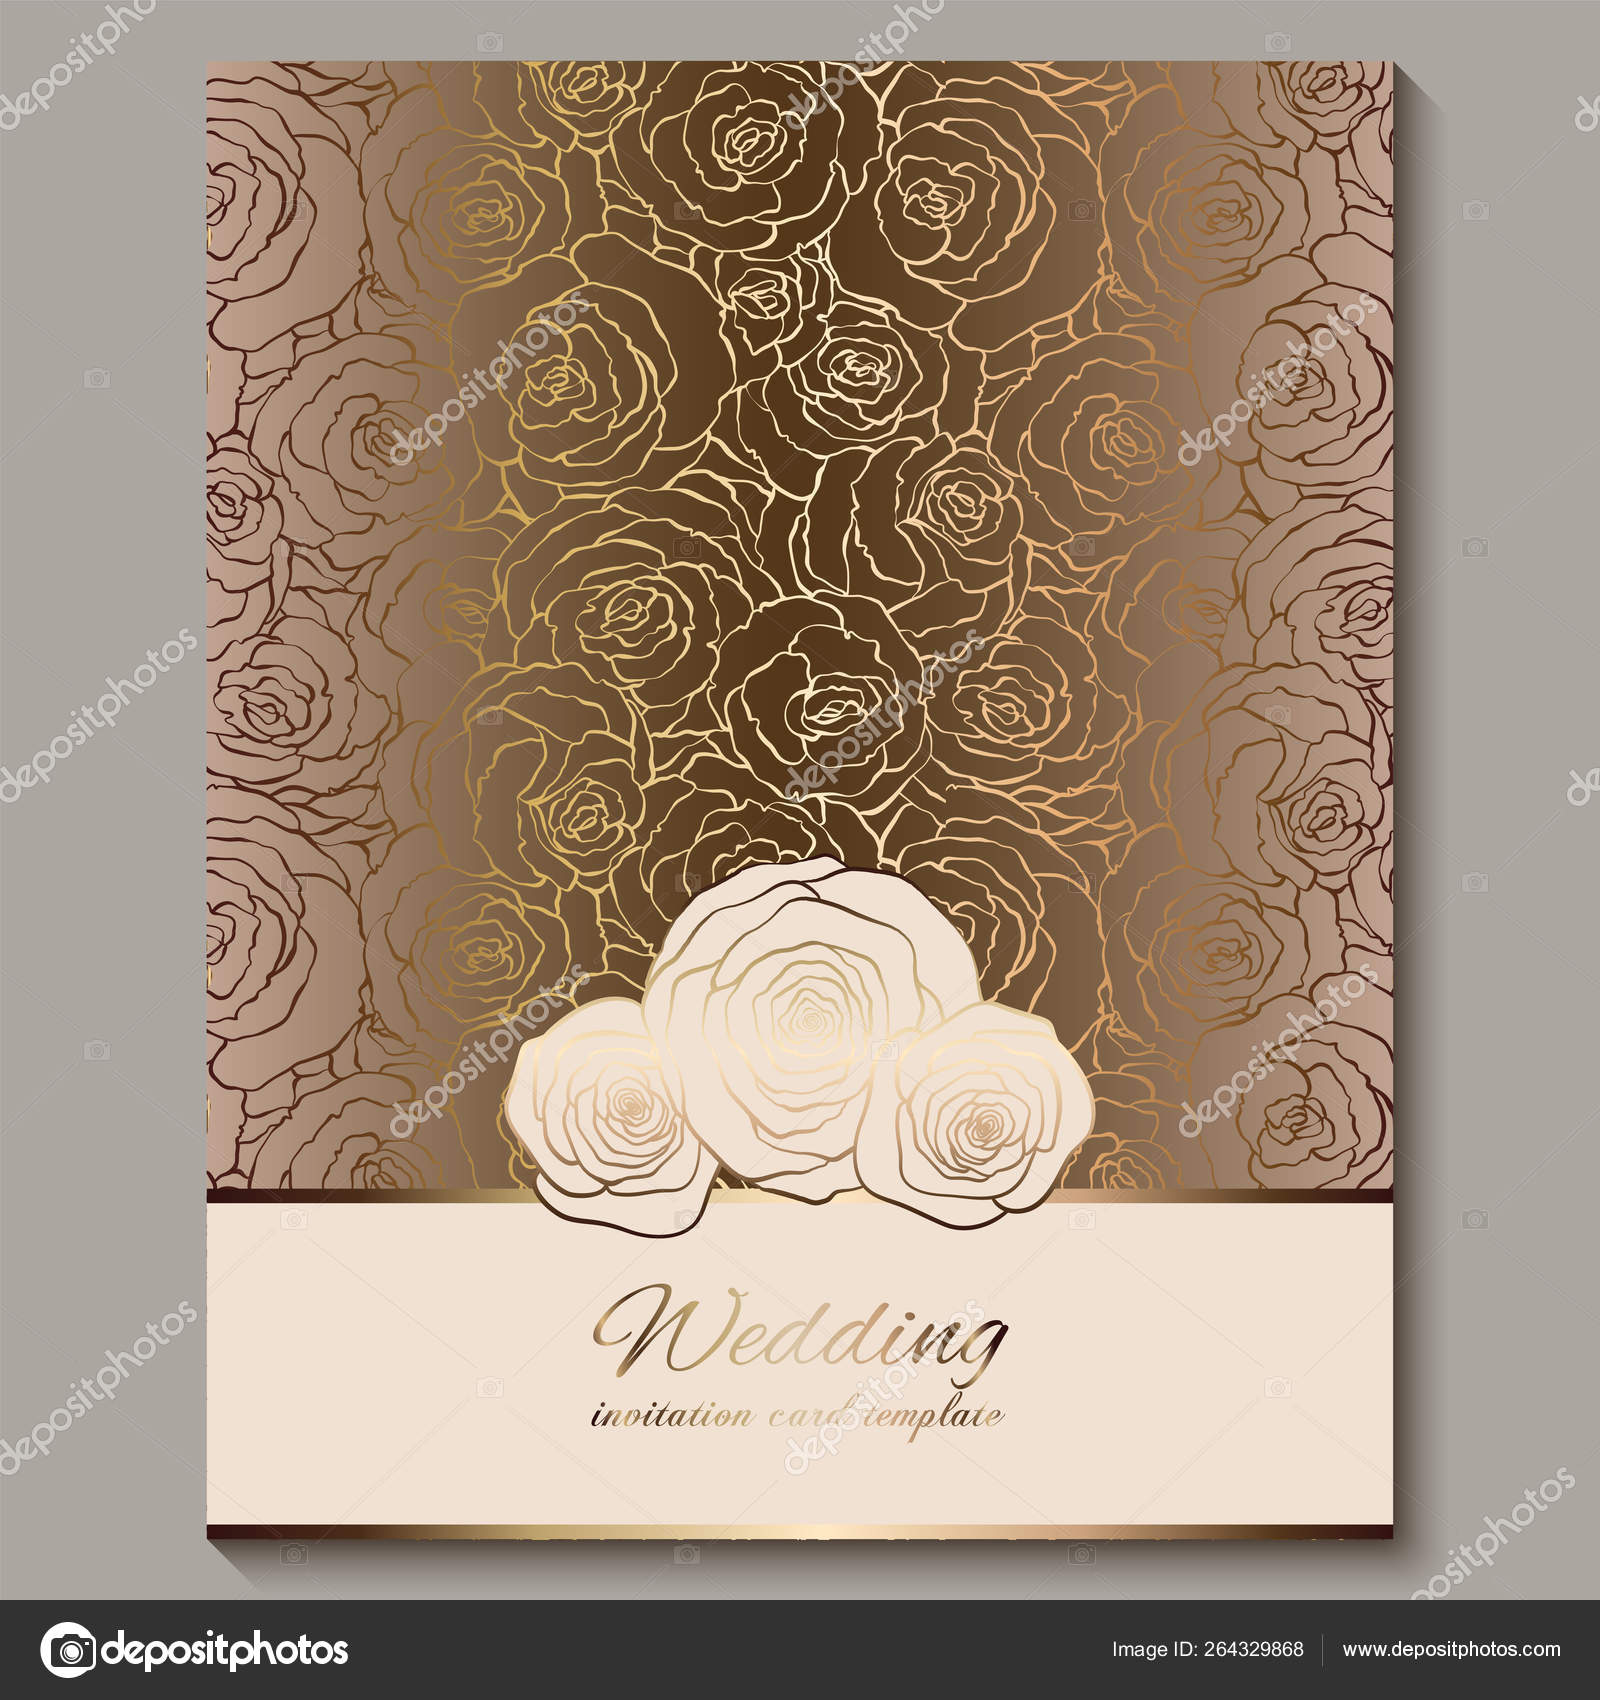 luxury gold vintage wedding invitation floral background with place for text lacy foliage made of roses with golden shiny gradient victorian wallpaper ornaments baroque style template for design stock vector c https depositphotos com 264329868 stock illustration luxury gold vintage wedding invitation html